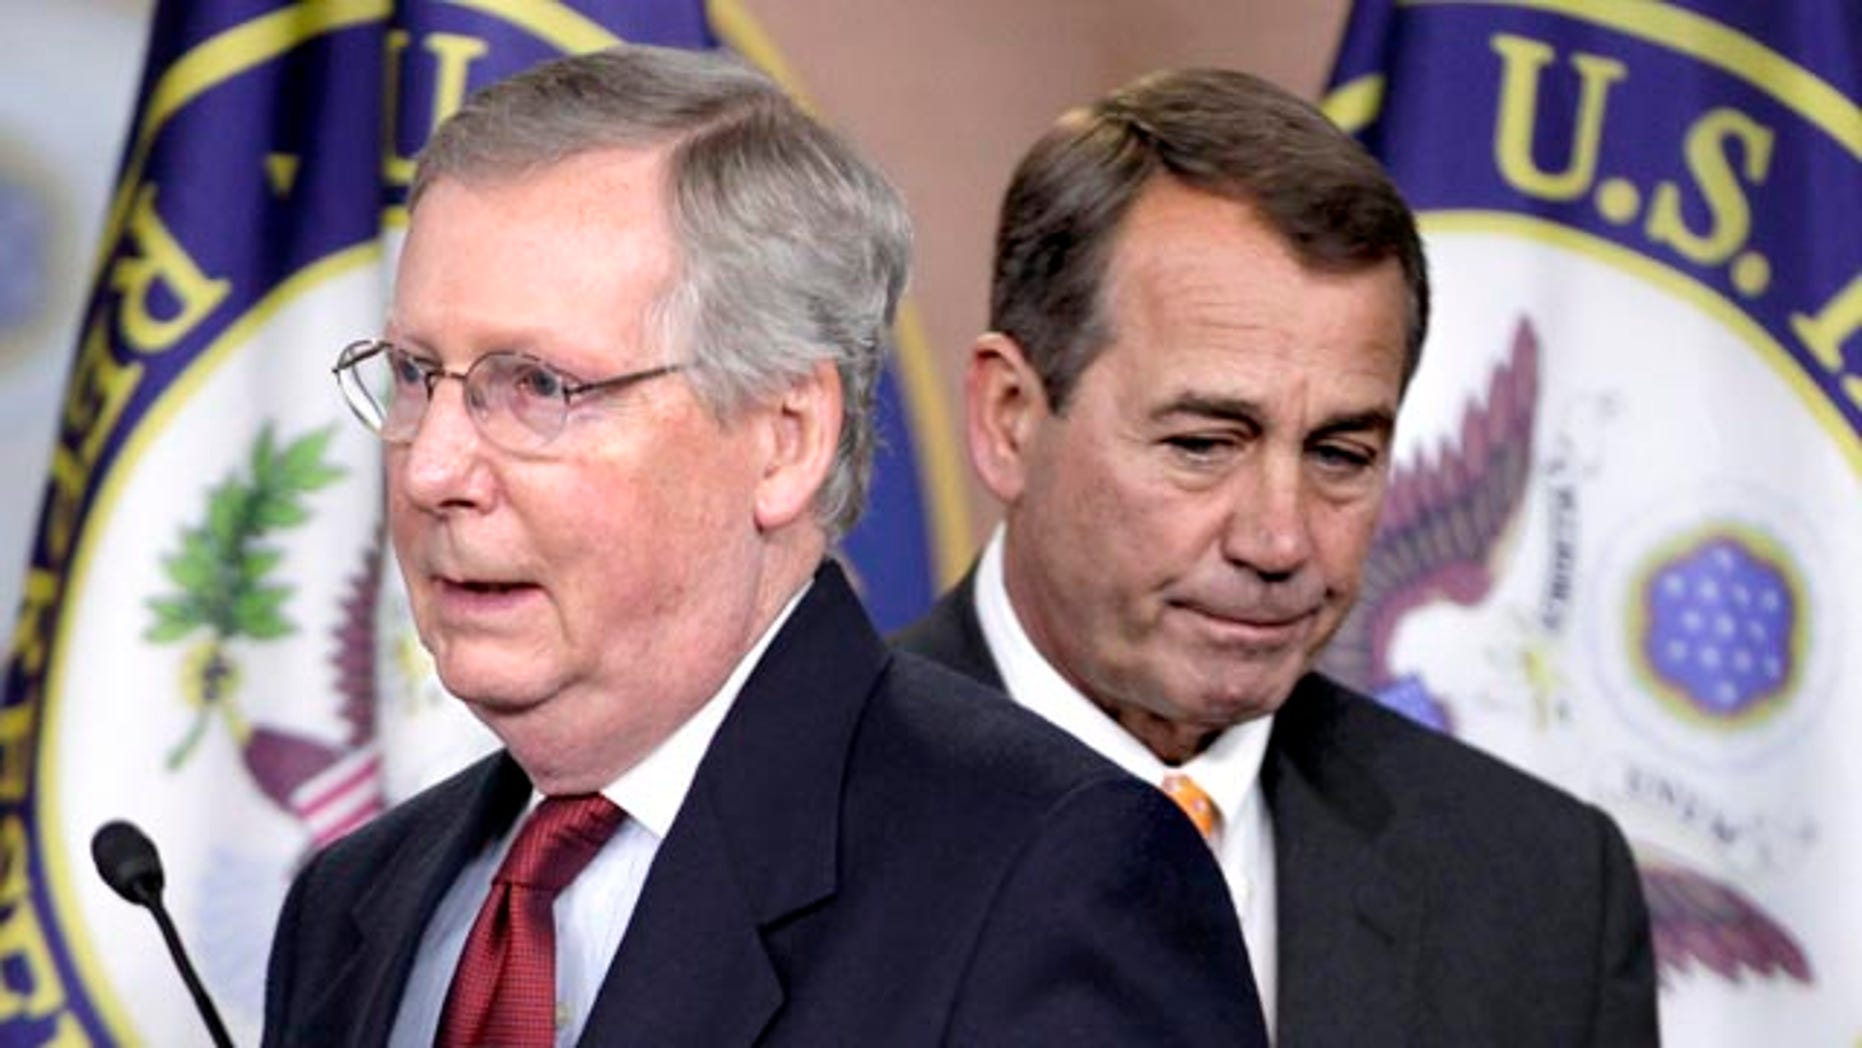 Nov. 3: House speaker-in-waiting John Boehner and Senate Minority Leader Mitch McConnell during a news conference on Capitol Hill in Washington. The White House postponed a meeting with bipartisan congressional leaders to Nov. 30 after top Republicans said they had a scheduling conflict.